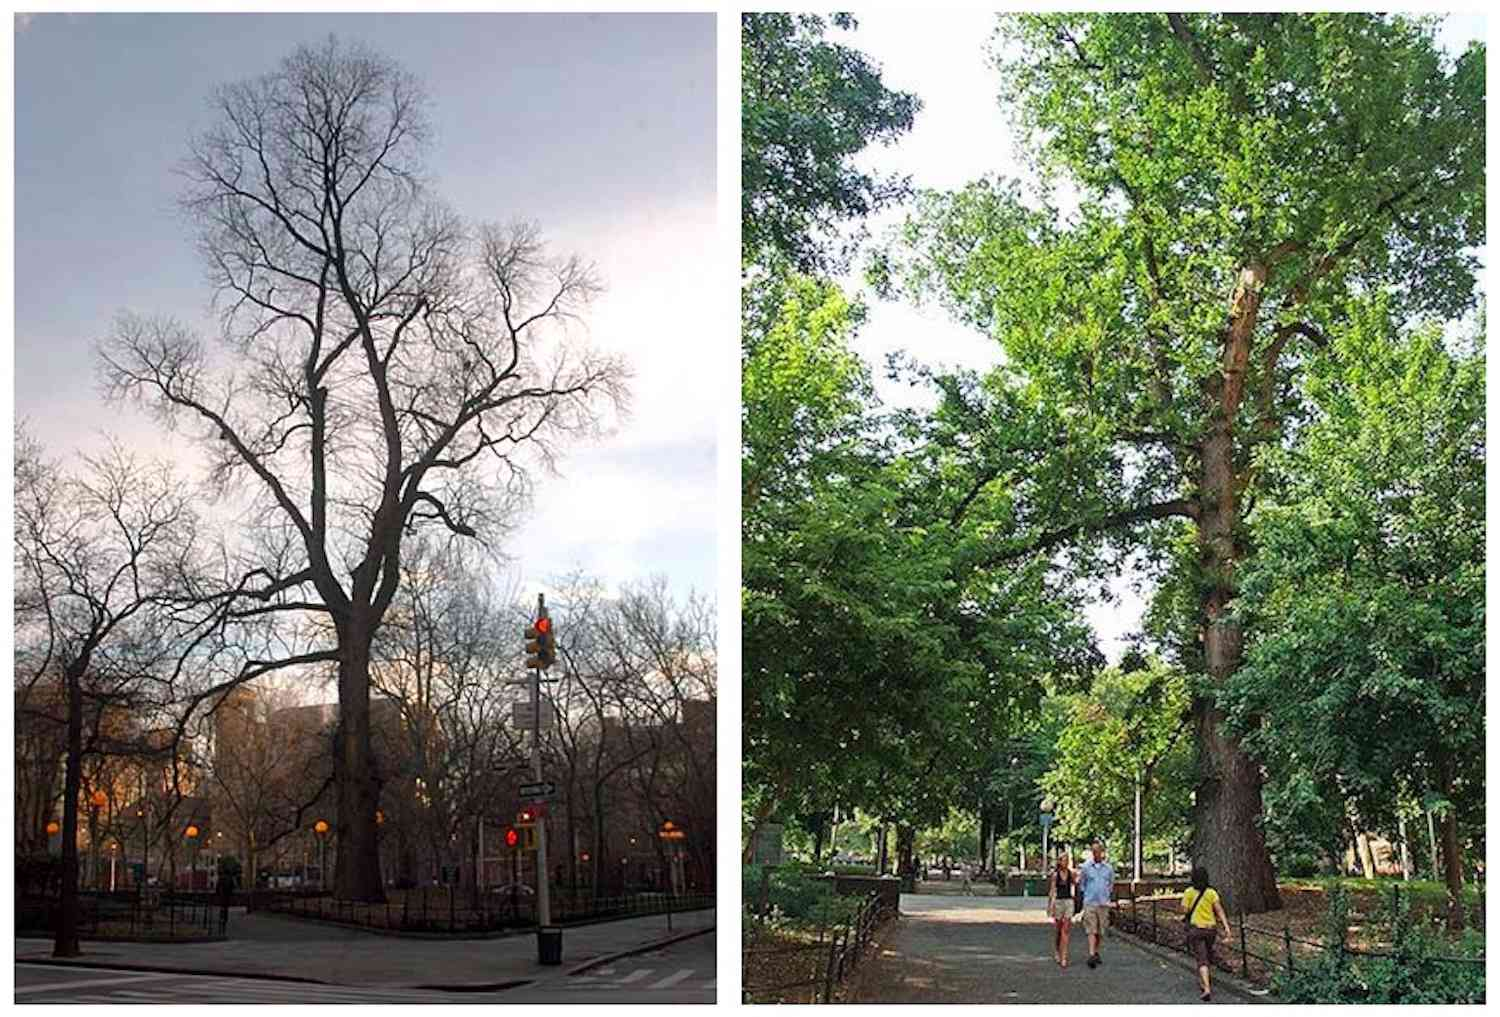 Hangman's Elm or The Hanging Tree in New York City's Washington Square in winter and in summer